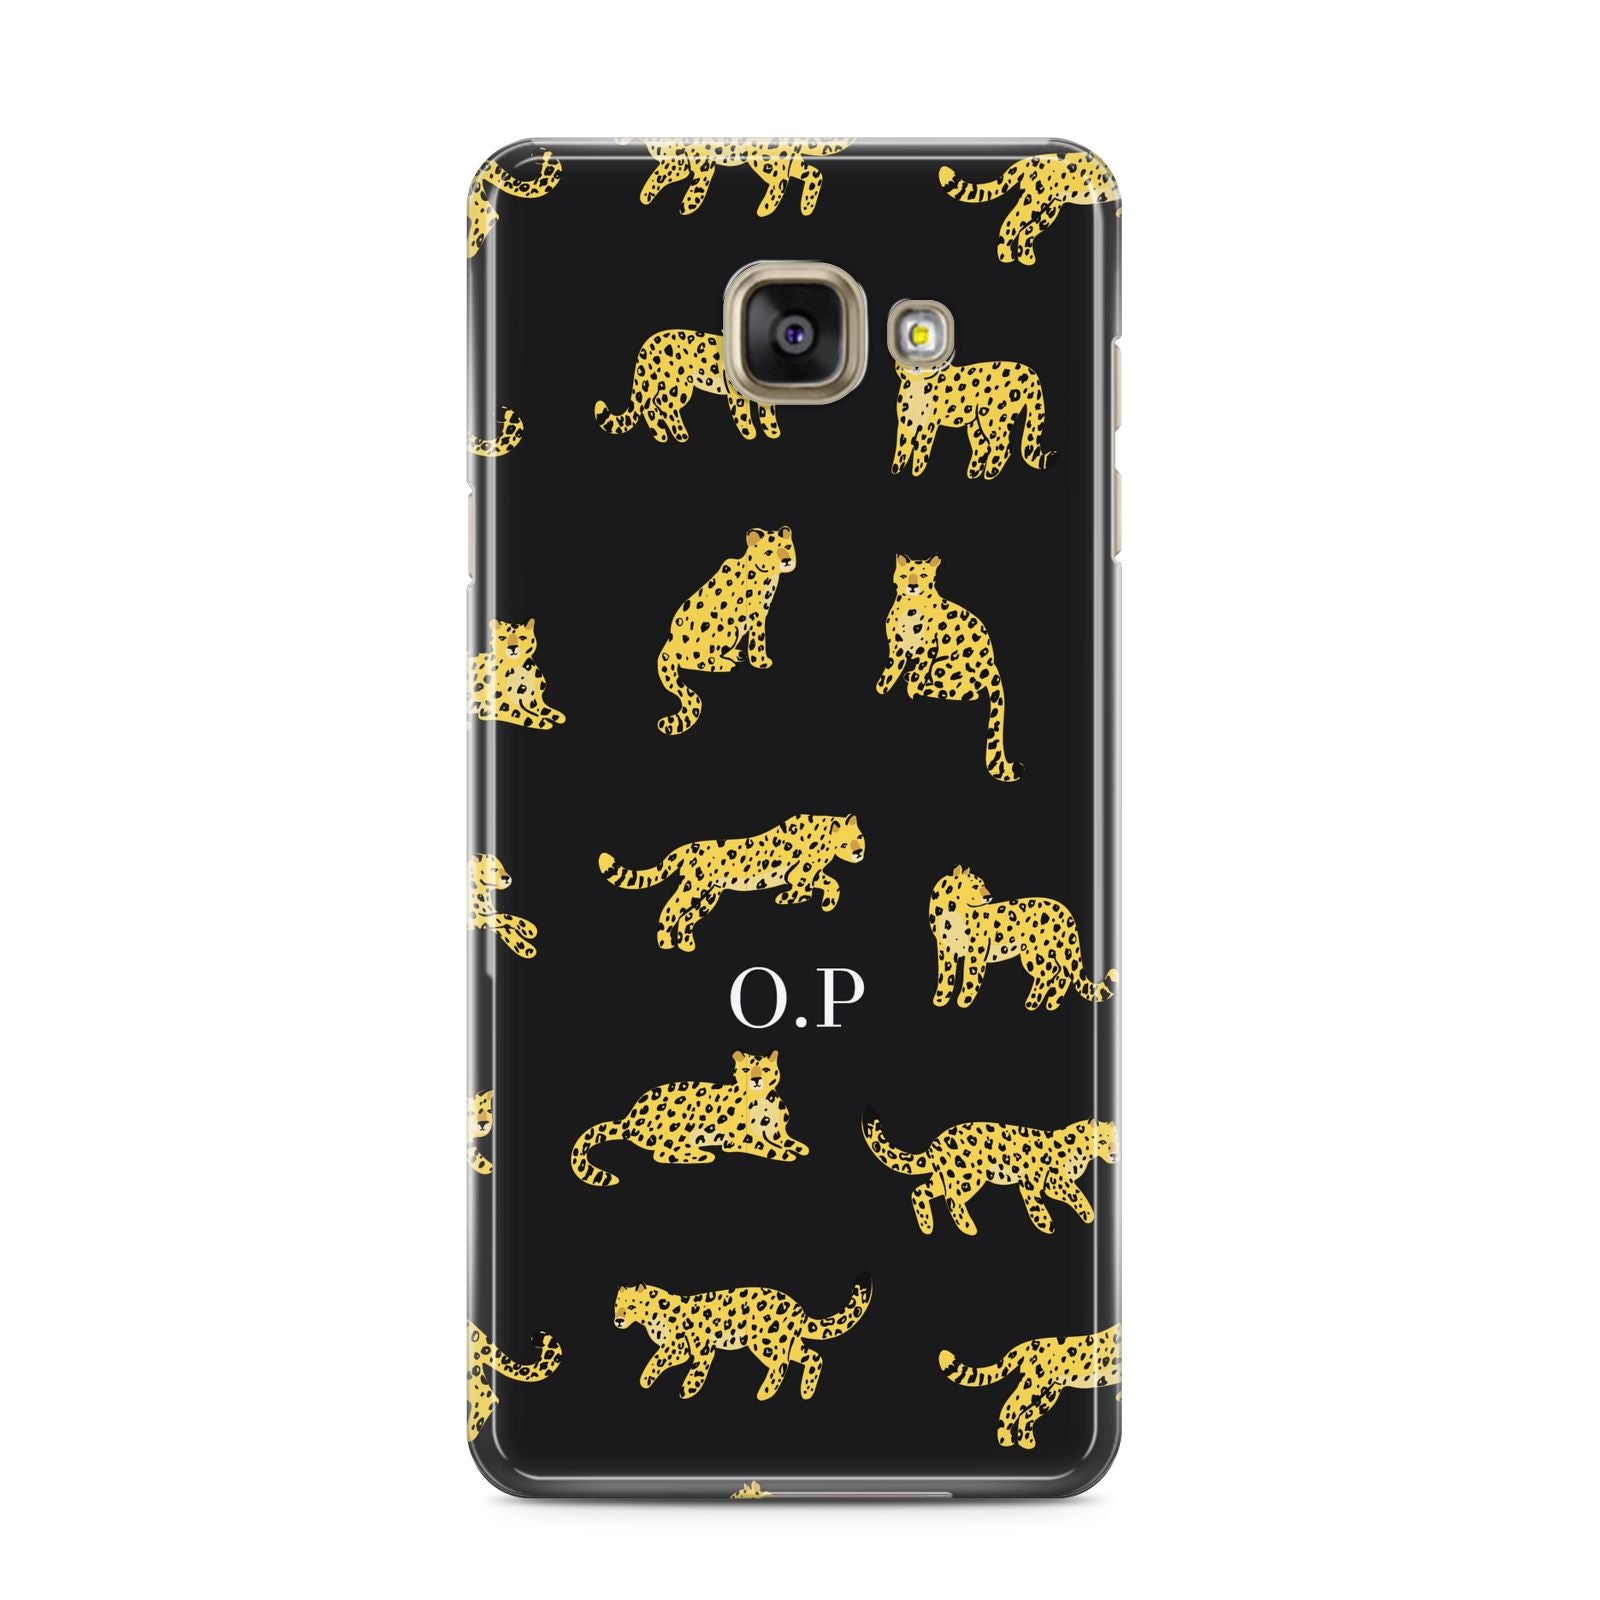 Prowling Leopard Samsung Galaxy A3 2016 Case on gold phone